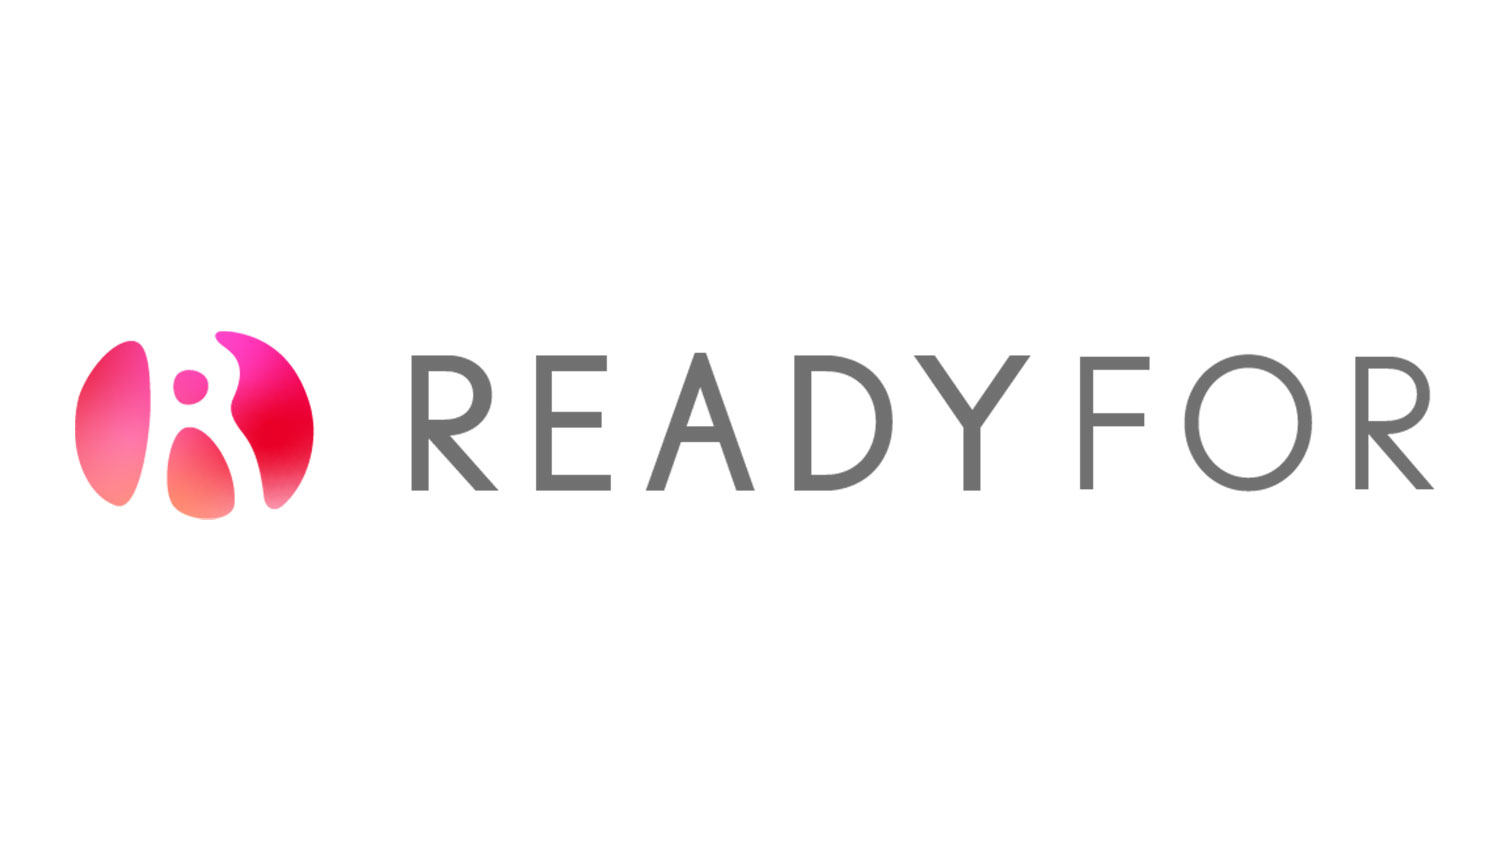 MUFG Innovation Partners completes investment in READYFOR INC.